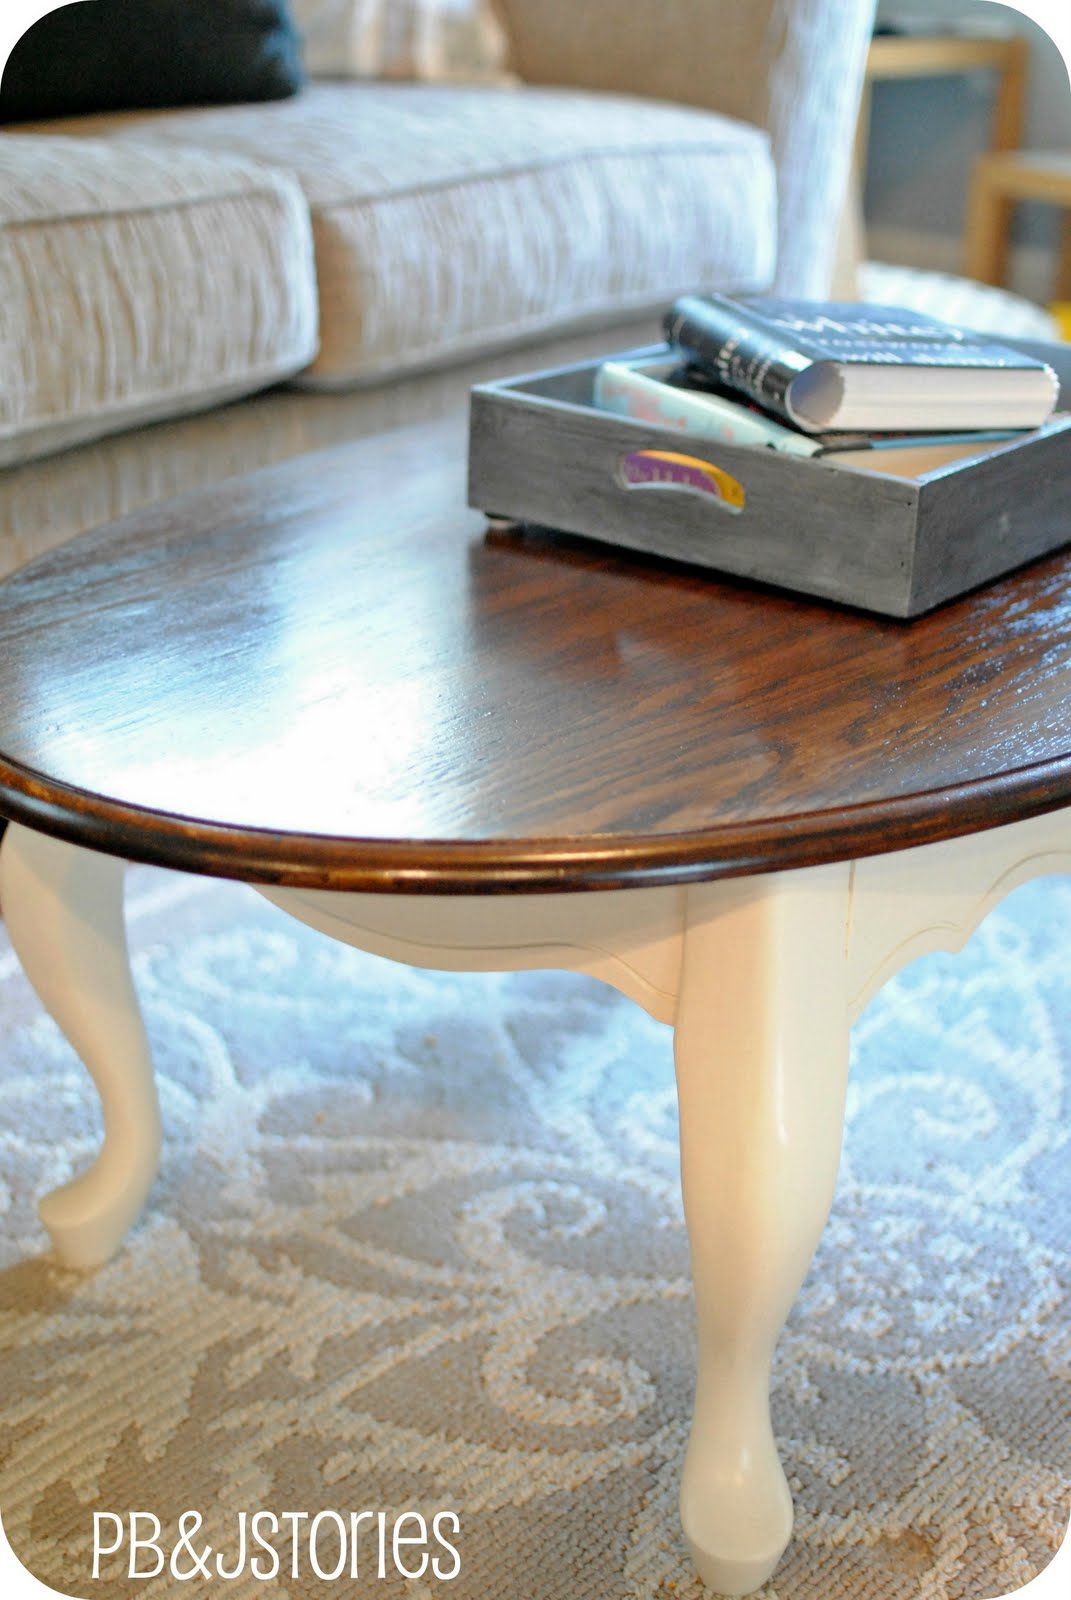 Pbjstories Thrifty Goodwill Table Makeover